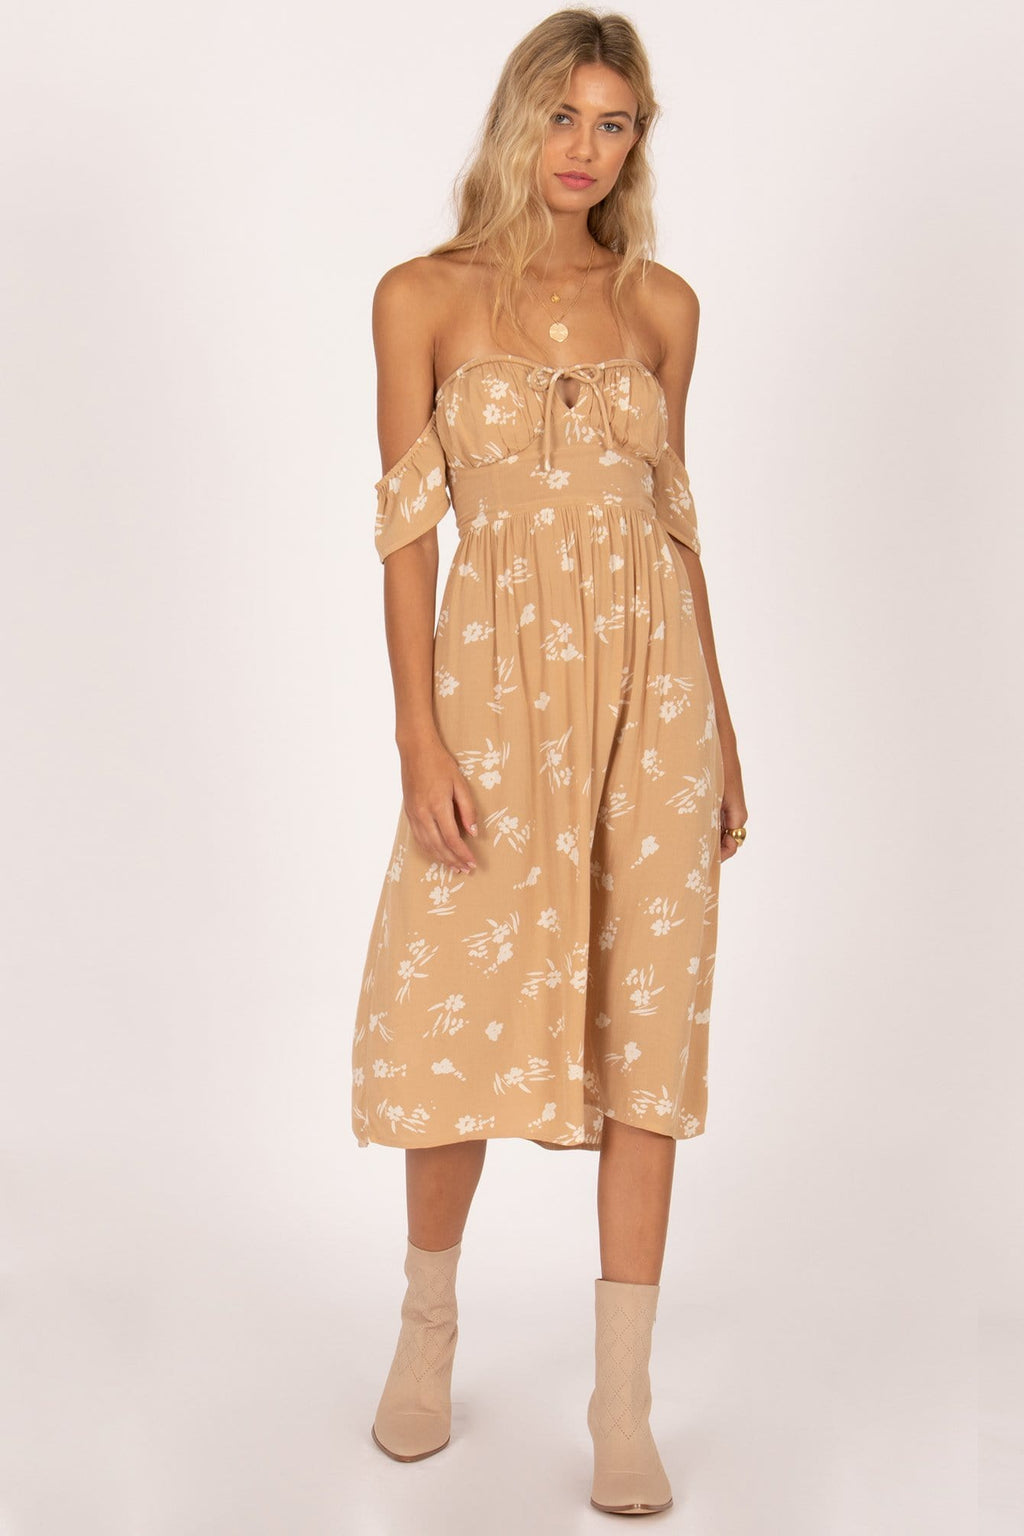 Amuse Society Regency Midi Dress Latte | Wild Dove Boutique | San Diego, CA